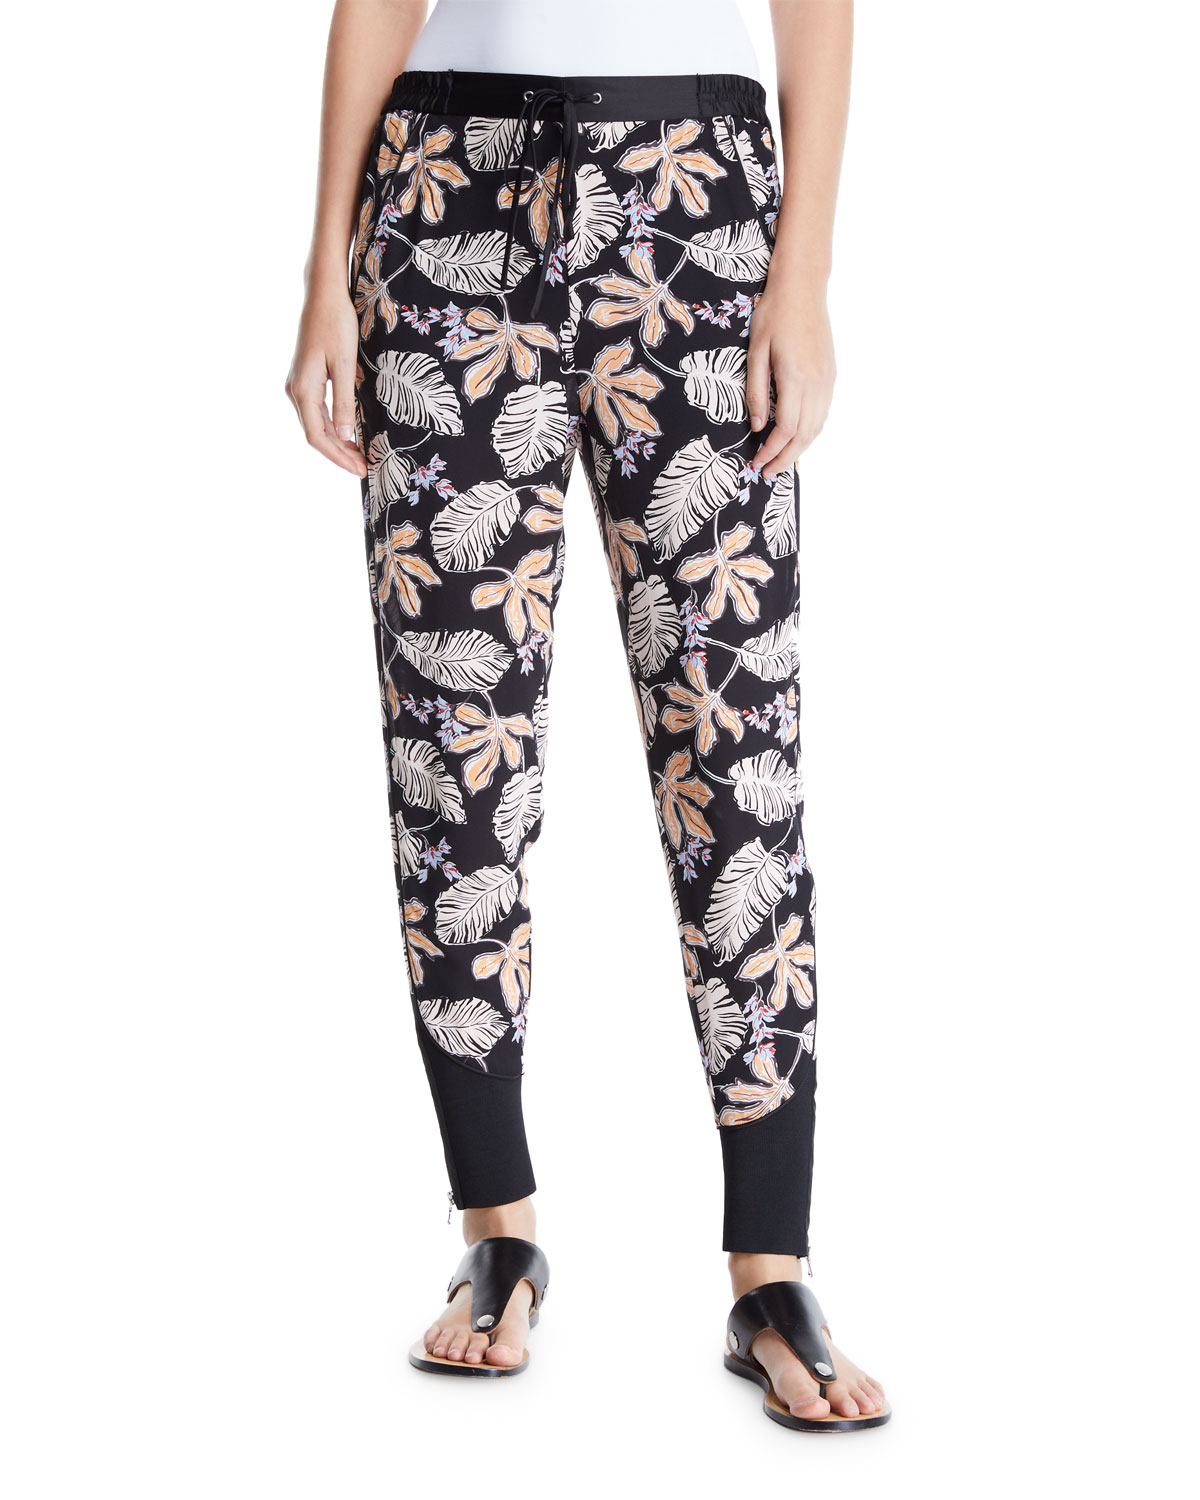 3.1 Phillip Lim Pants FLORAL LEAF CREPE JOGGER PANTS WITH PIPING